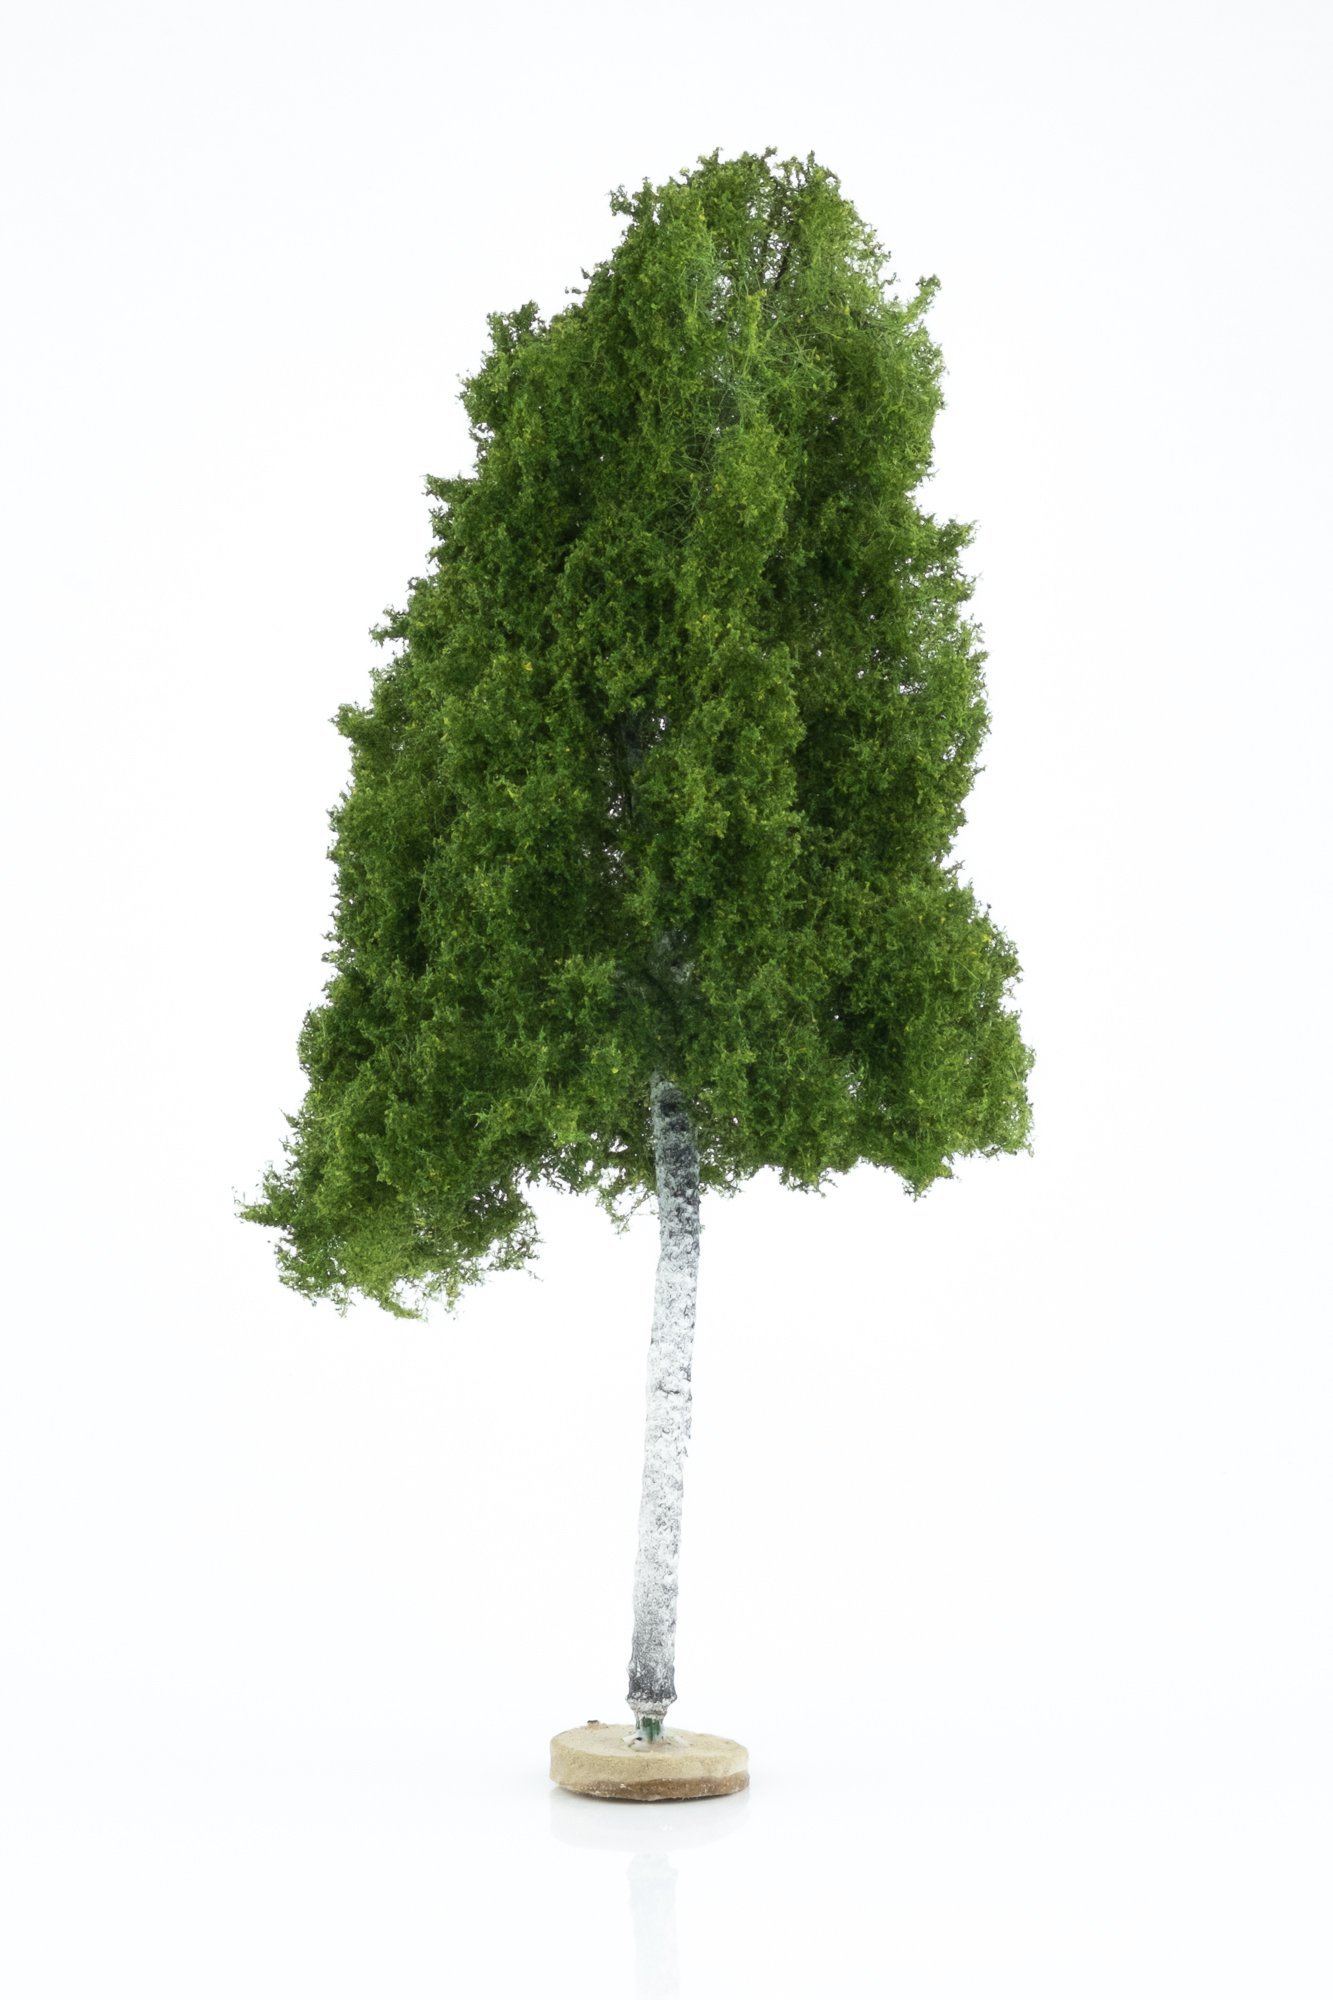 Hand-made, green, birch tree model. Size between 26 and 28 cm. Made from high quality model supplies by Primo Models.